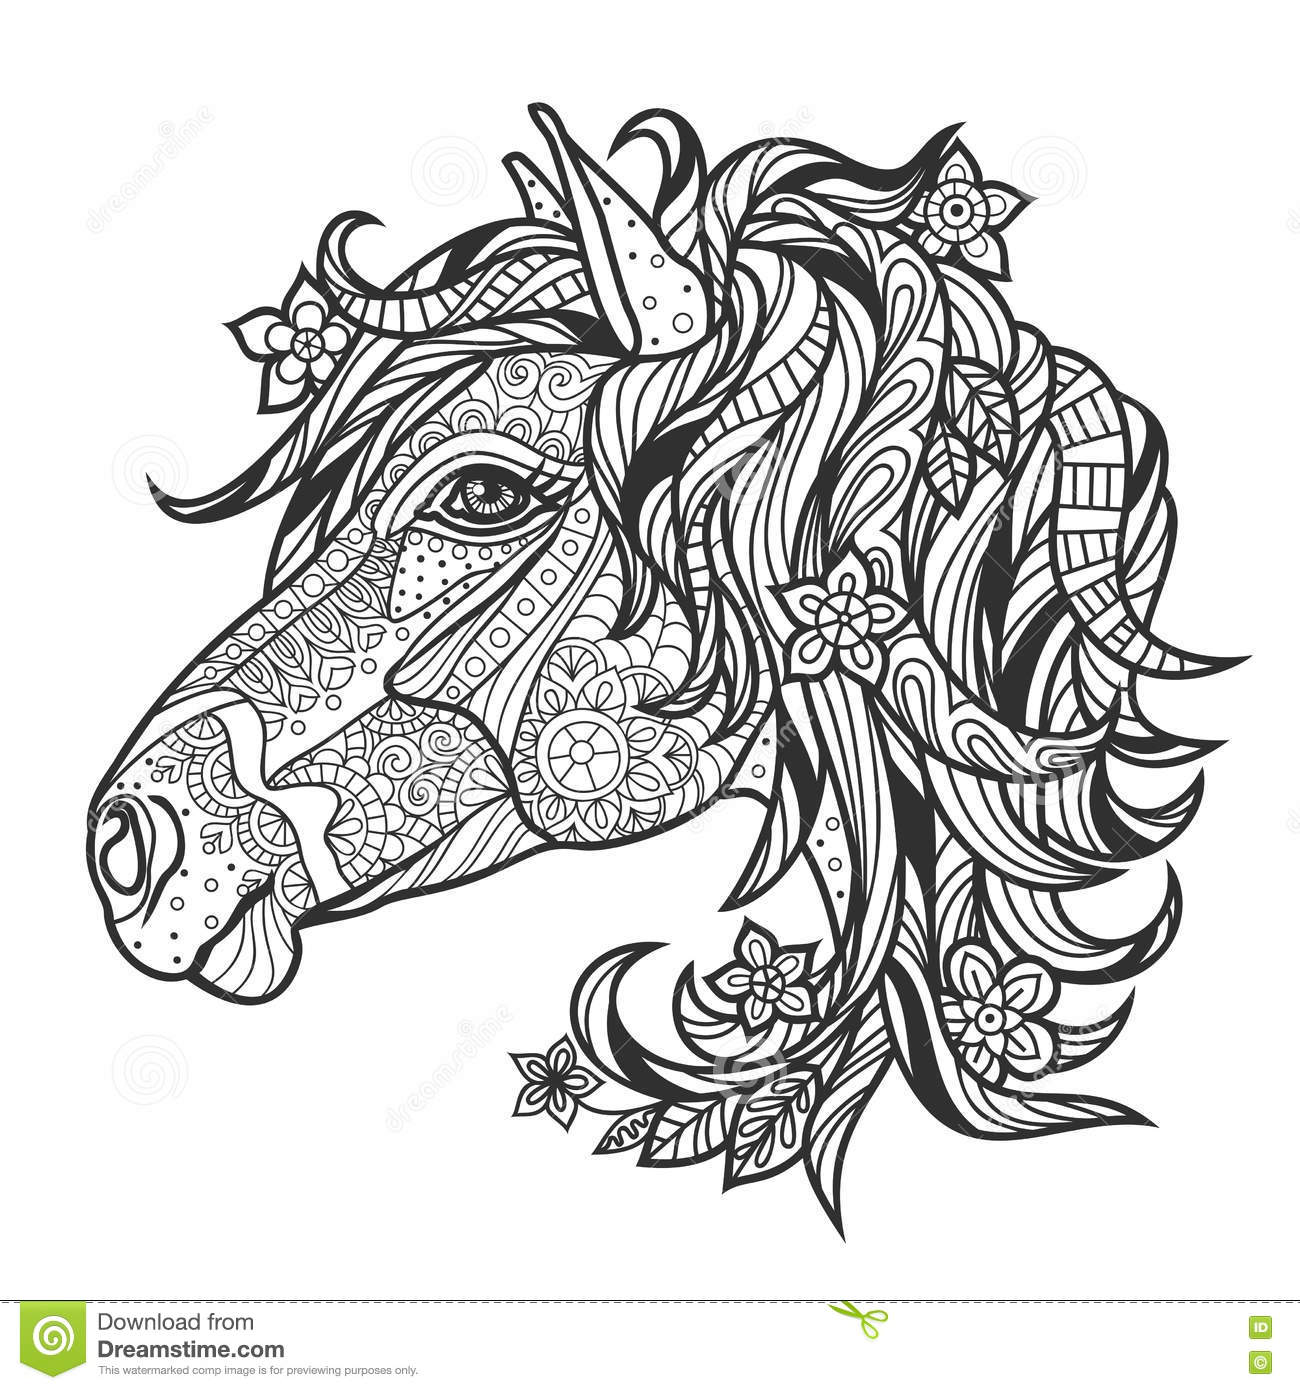 horse coloring pages for adults - coloring anti stress with a portrait of a horse stock